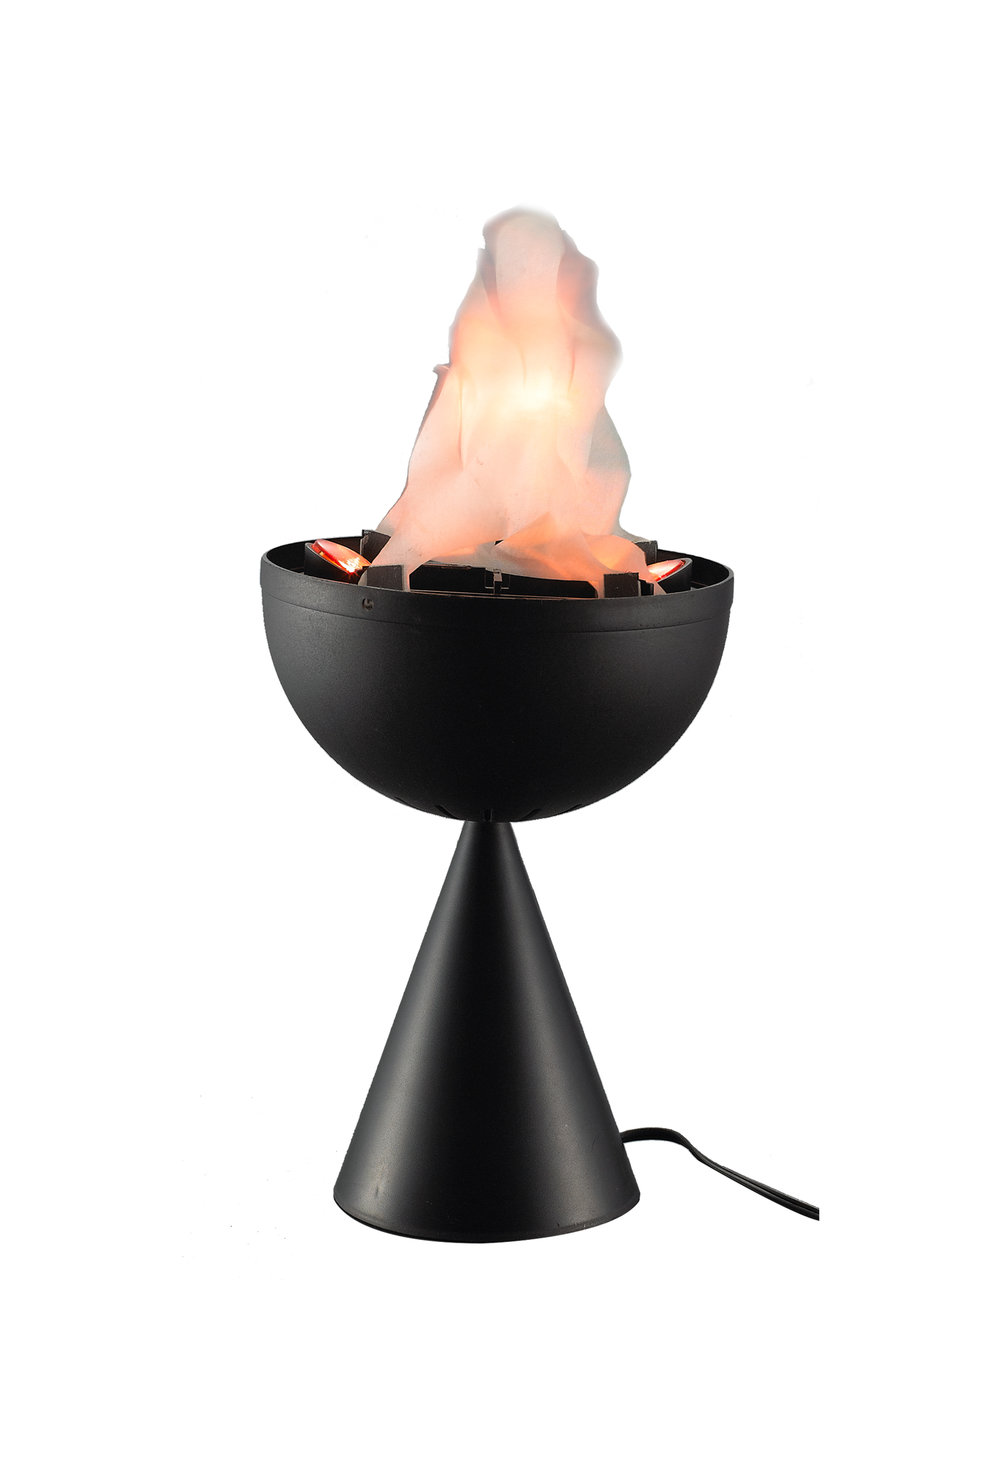 V0105C  MINI TABLETOP FLAME  -Table Top Flame Effect with 2 Bulbs